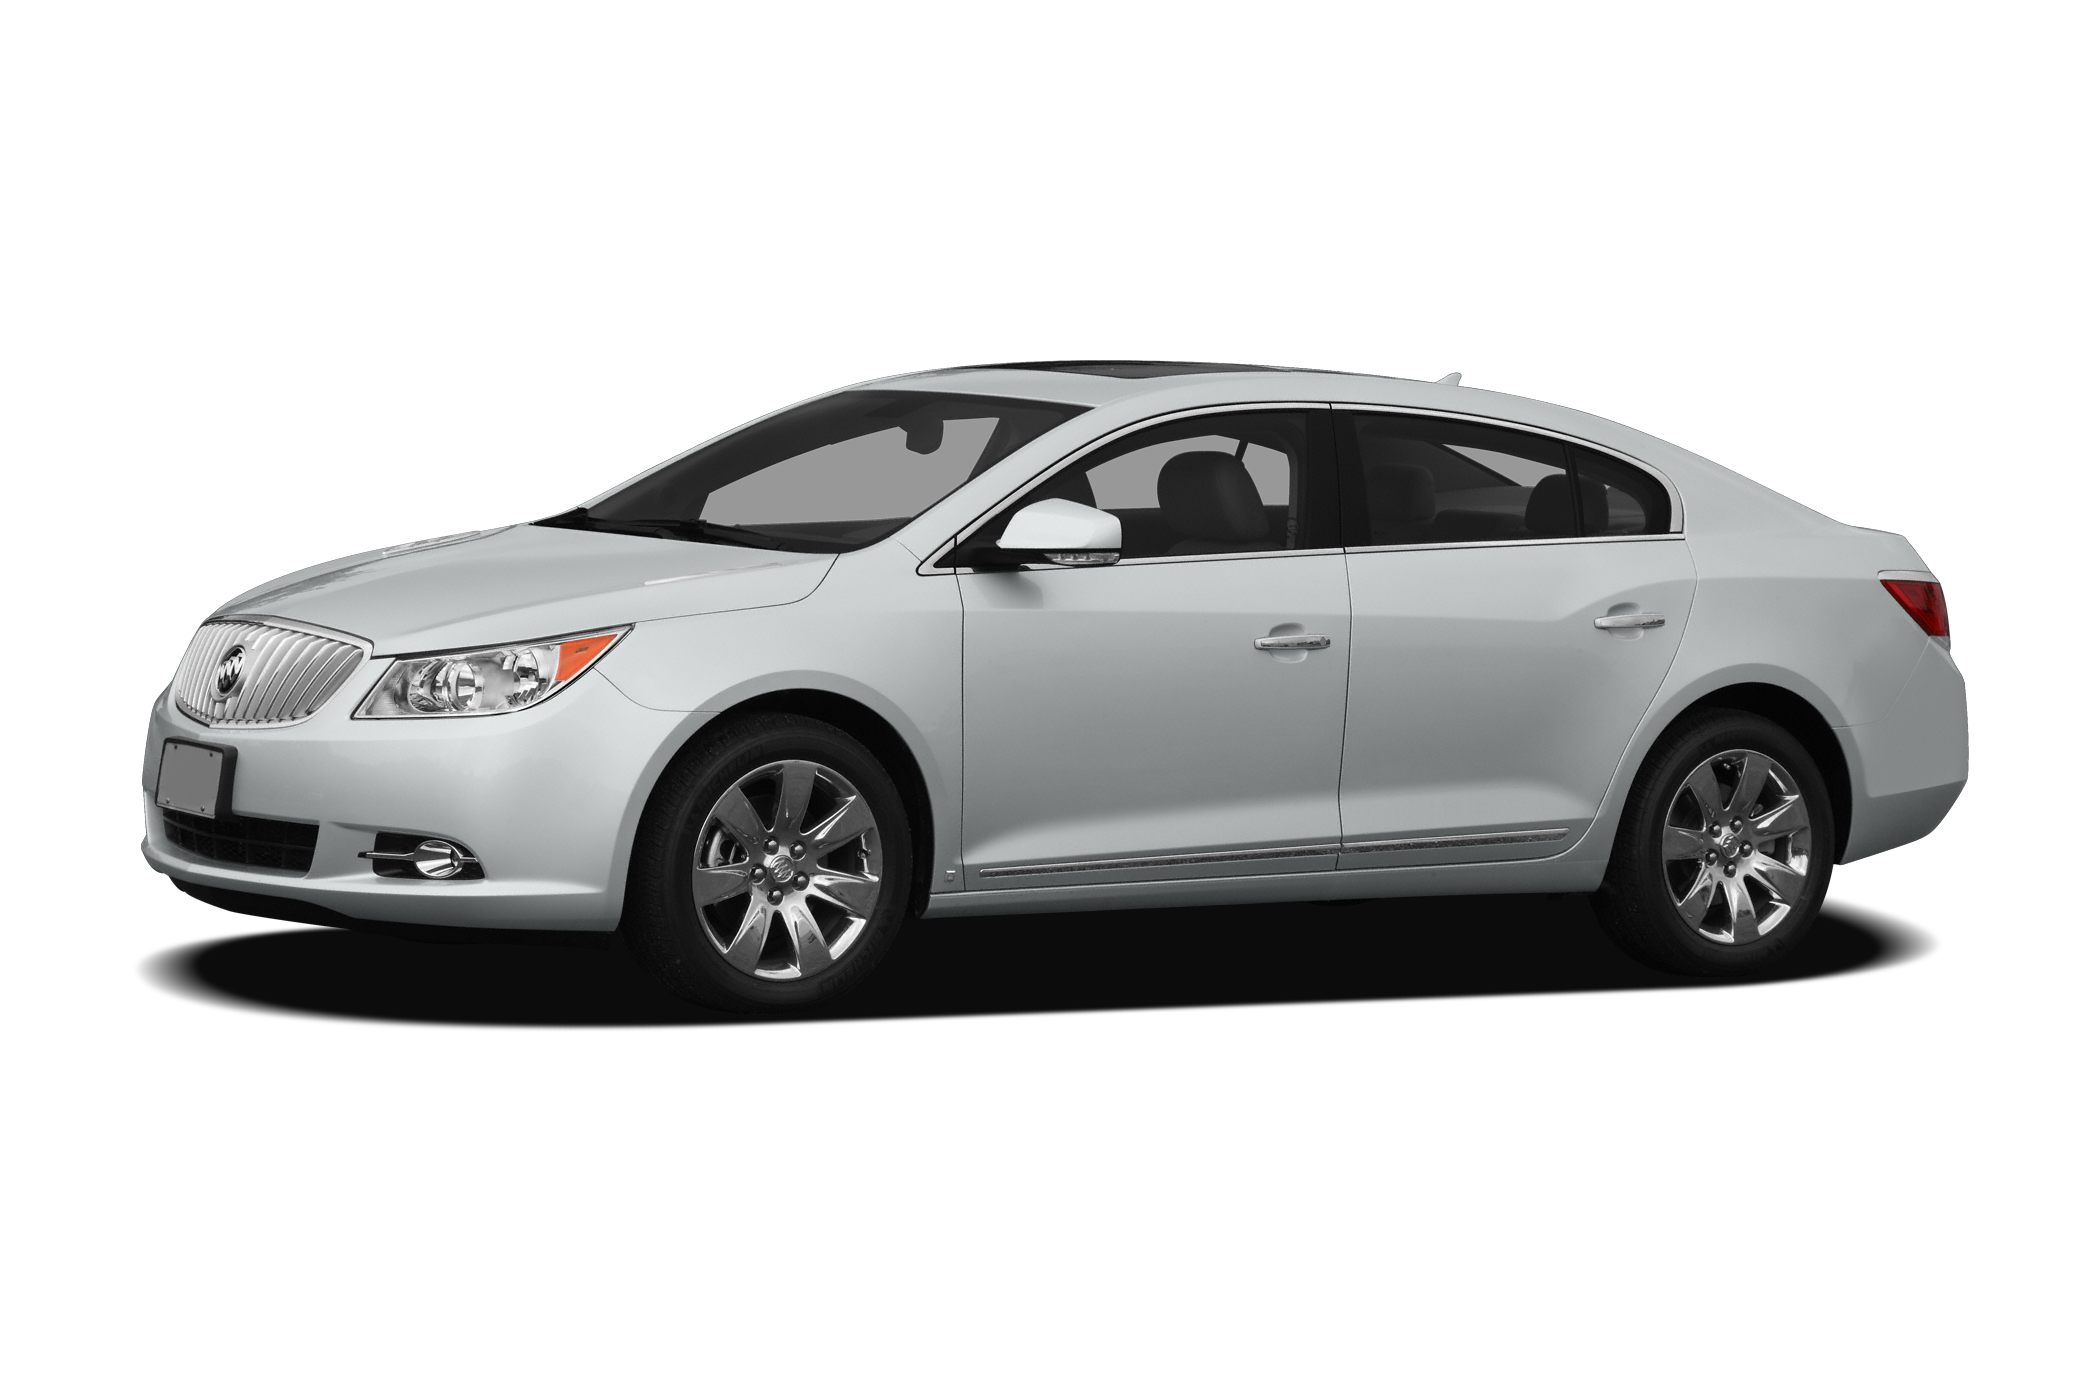 2010 Buick LaCrosse CXS Sedan for sale in Lebanon for $16,800 with 79,529 miles.